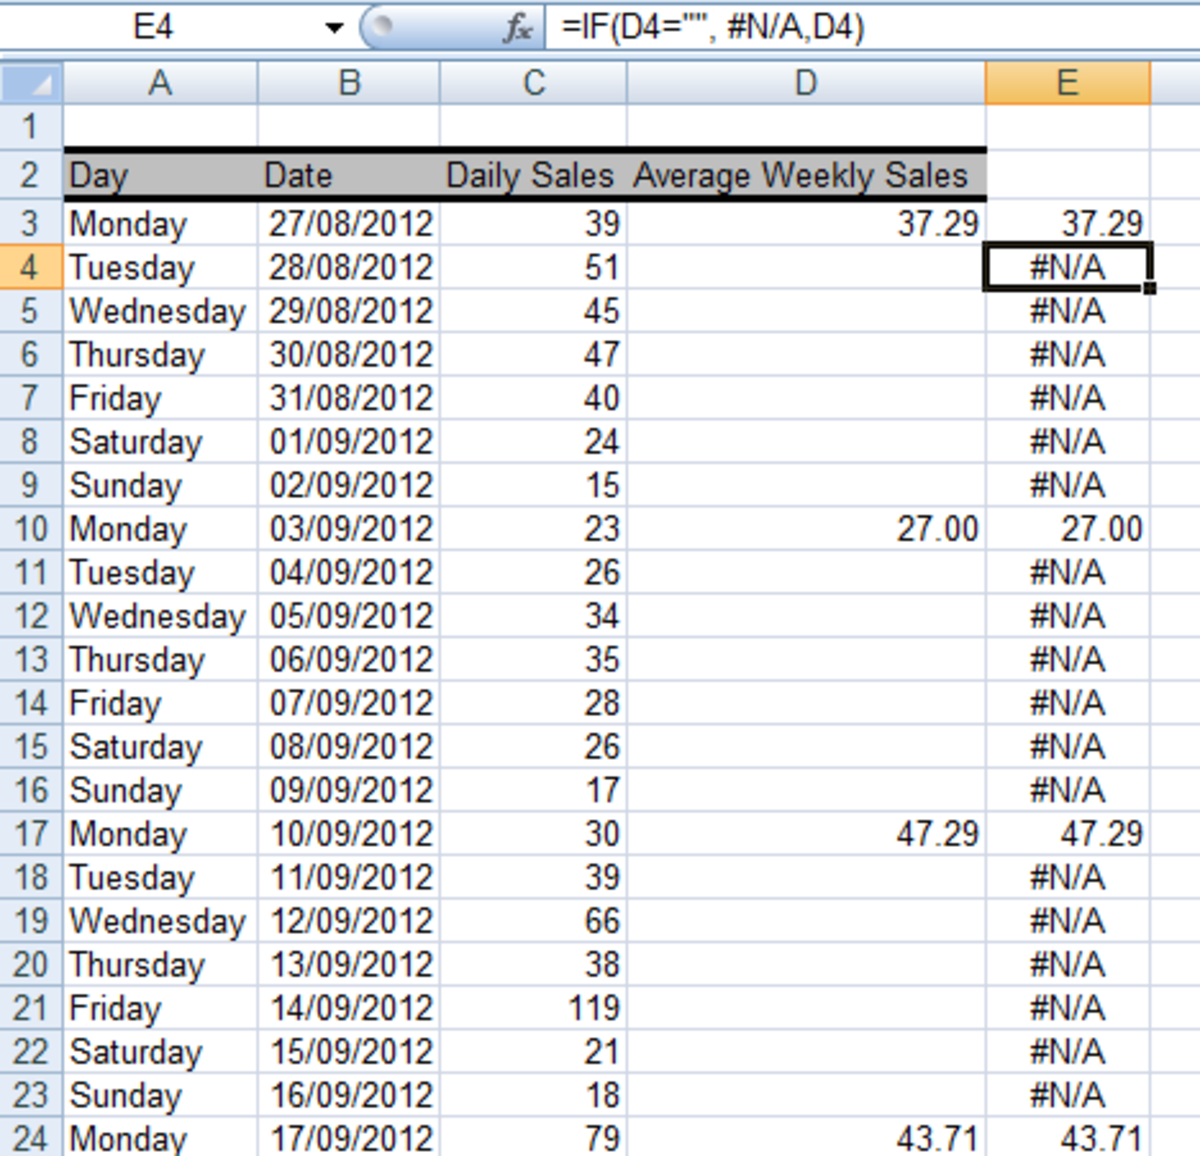 Ediblewildsus  Winning How To Get Excel  And  To Ignore Empty Cells In A Chart Or  With Hot Using The If Function In A Formula To Convert Empty Cells To Na With Divine Recover Unsaved Excel File  Also Excel Tire In Addition Deleting Columns In Excel And Personal Finance Spreadsheet Excel As Well As Quickbooks To Excel Additionally Lorenz Curve Excel From Turbofuturecom With Ediblewildsus  Hot How To Get Excel  And  To Ignore Empty Cells In A Chart Or  With Divine Using The If Function In A Formula To Convert Empty Cells To Na And Winning Recover Unsaved Excel File  Also Excel Tire In Addition Deleting Columns In Excel From Turbofuturecom